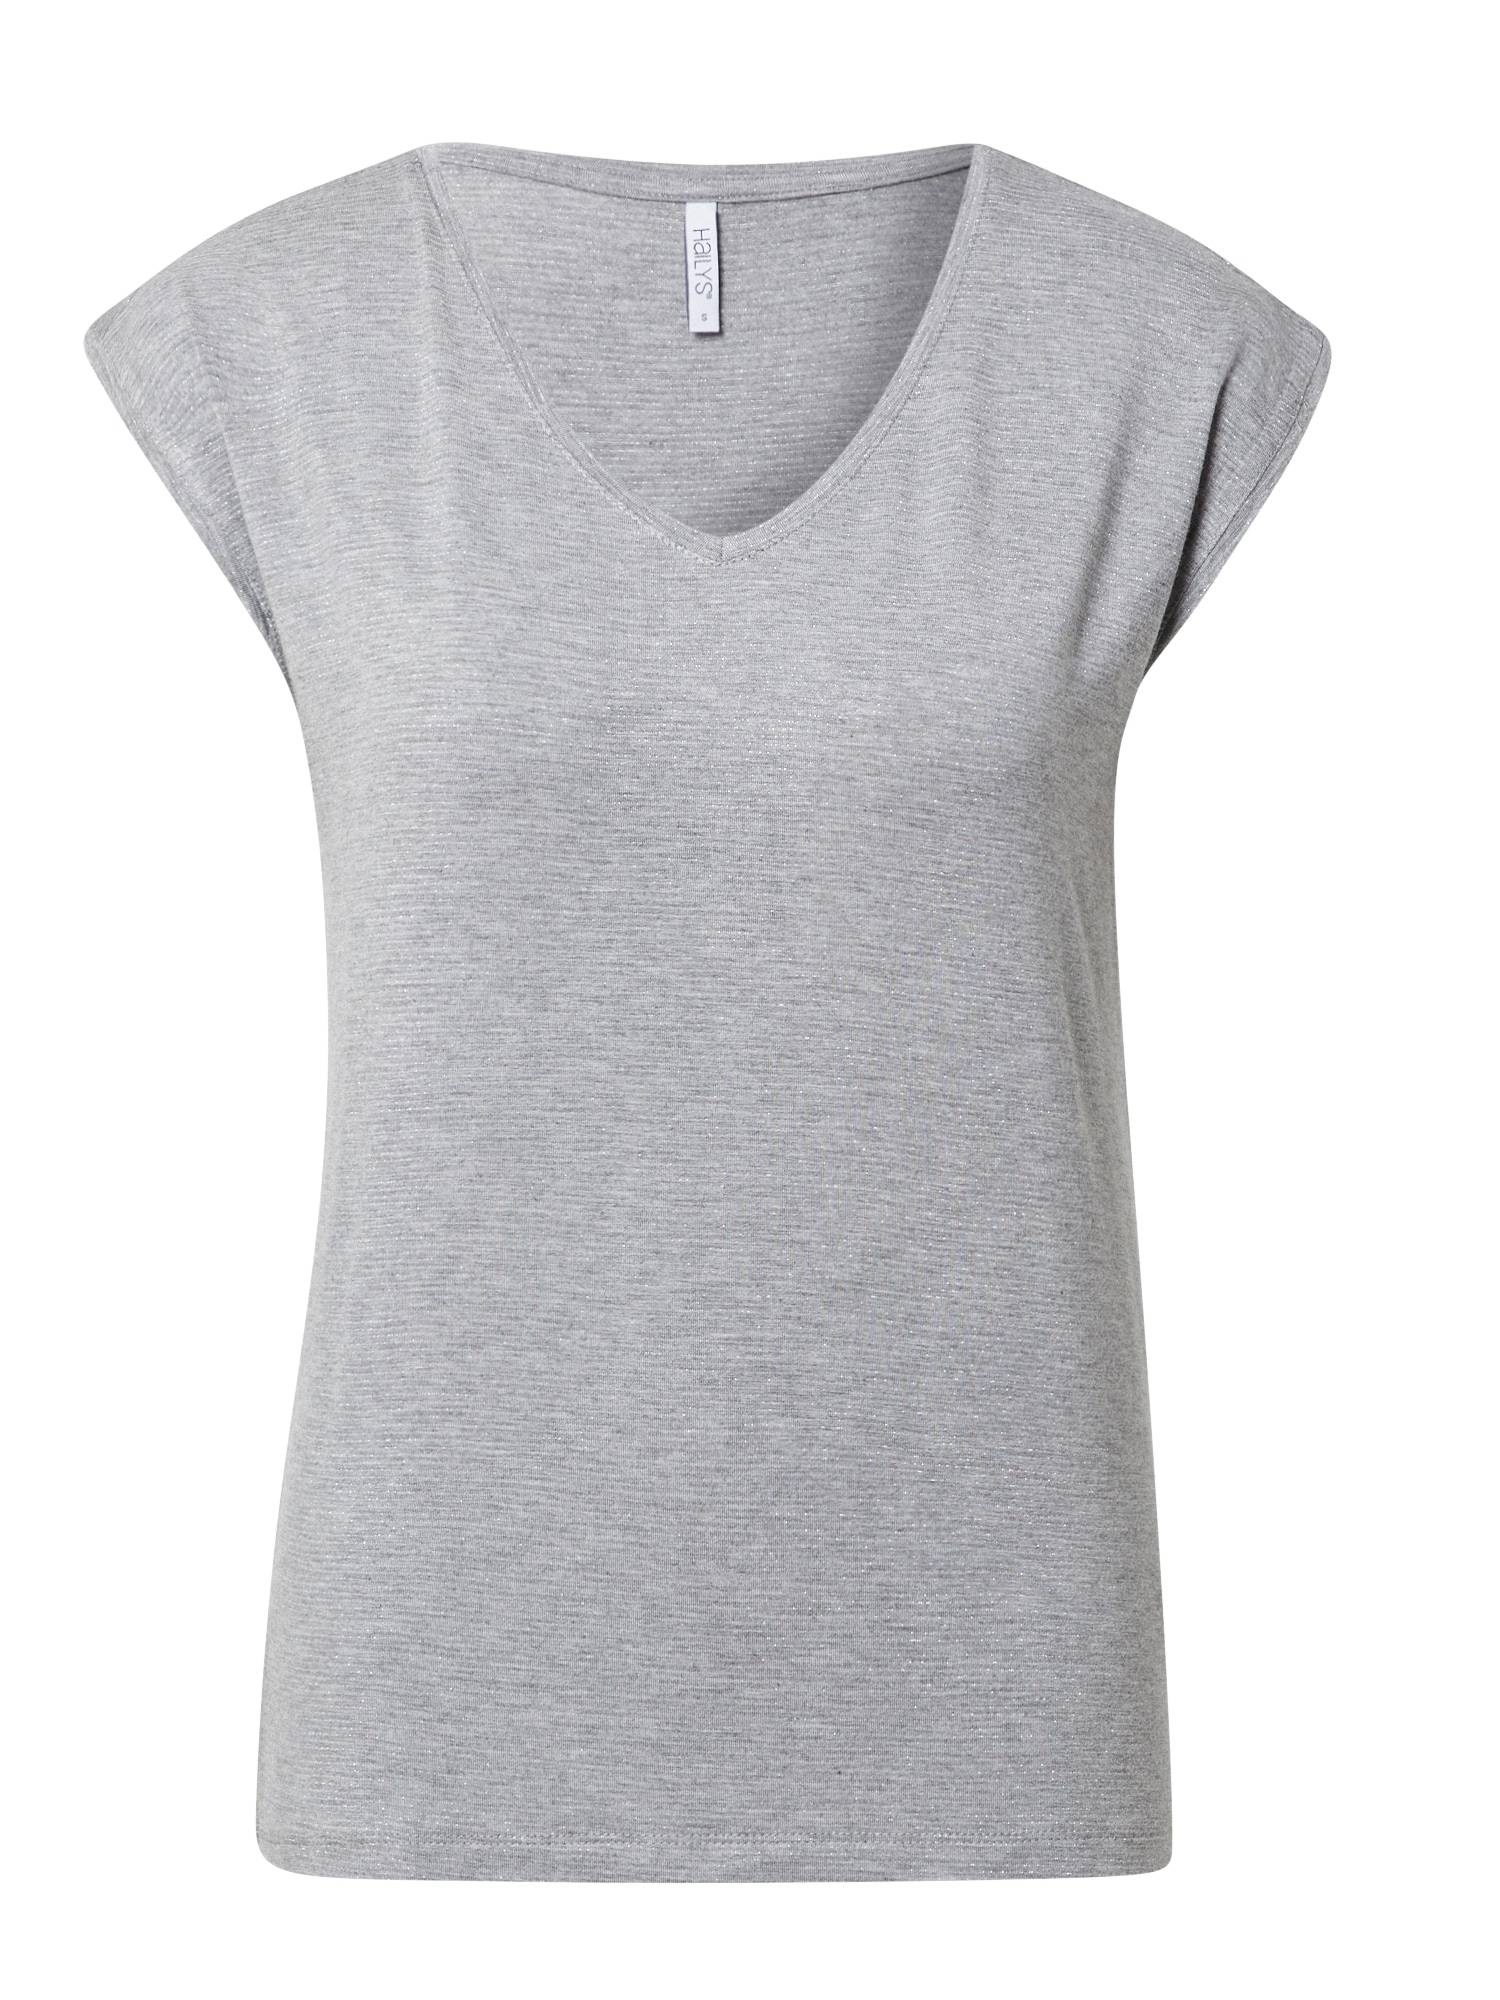 Hailys T-shirt 'TP Luxe'  - Gris - Taille: XS - female